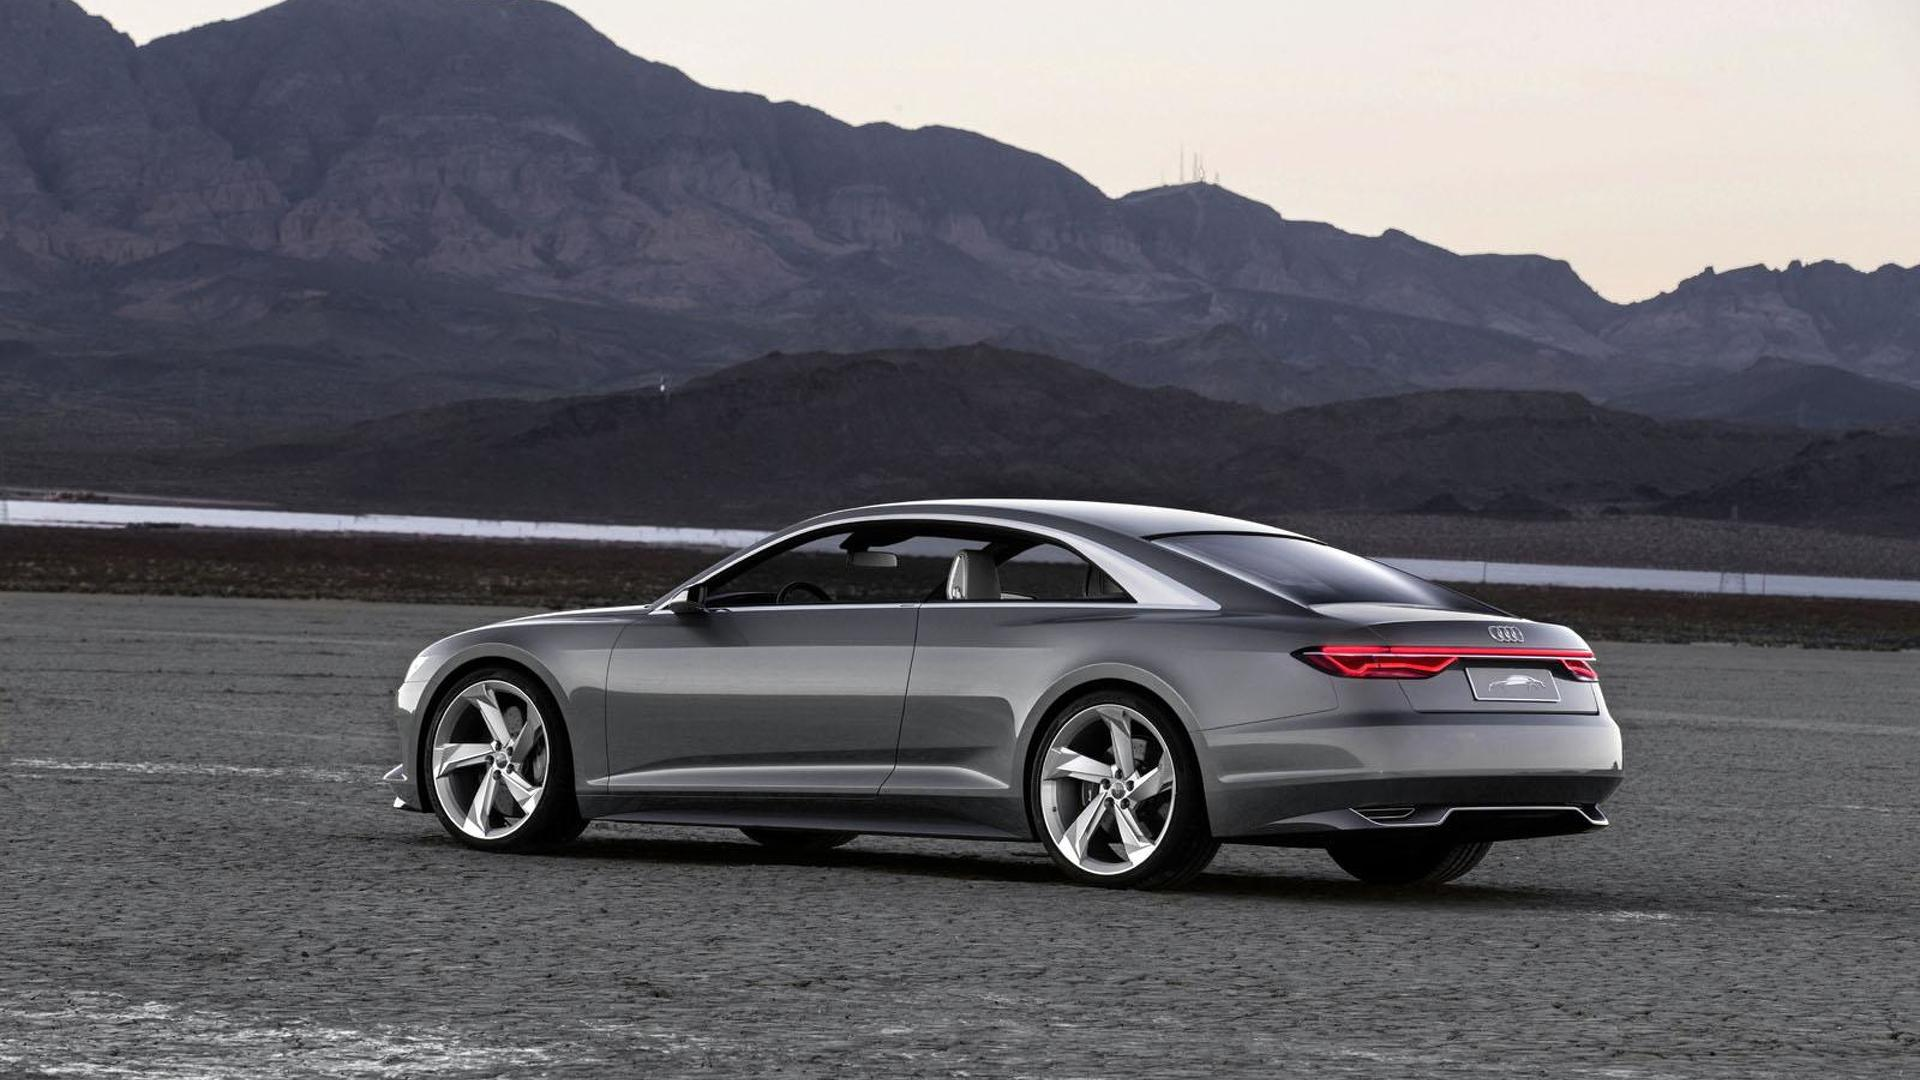 2015 Audi Prologue Piloted Driving